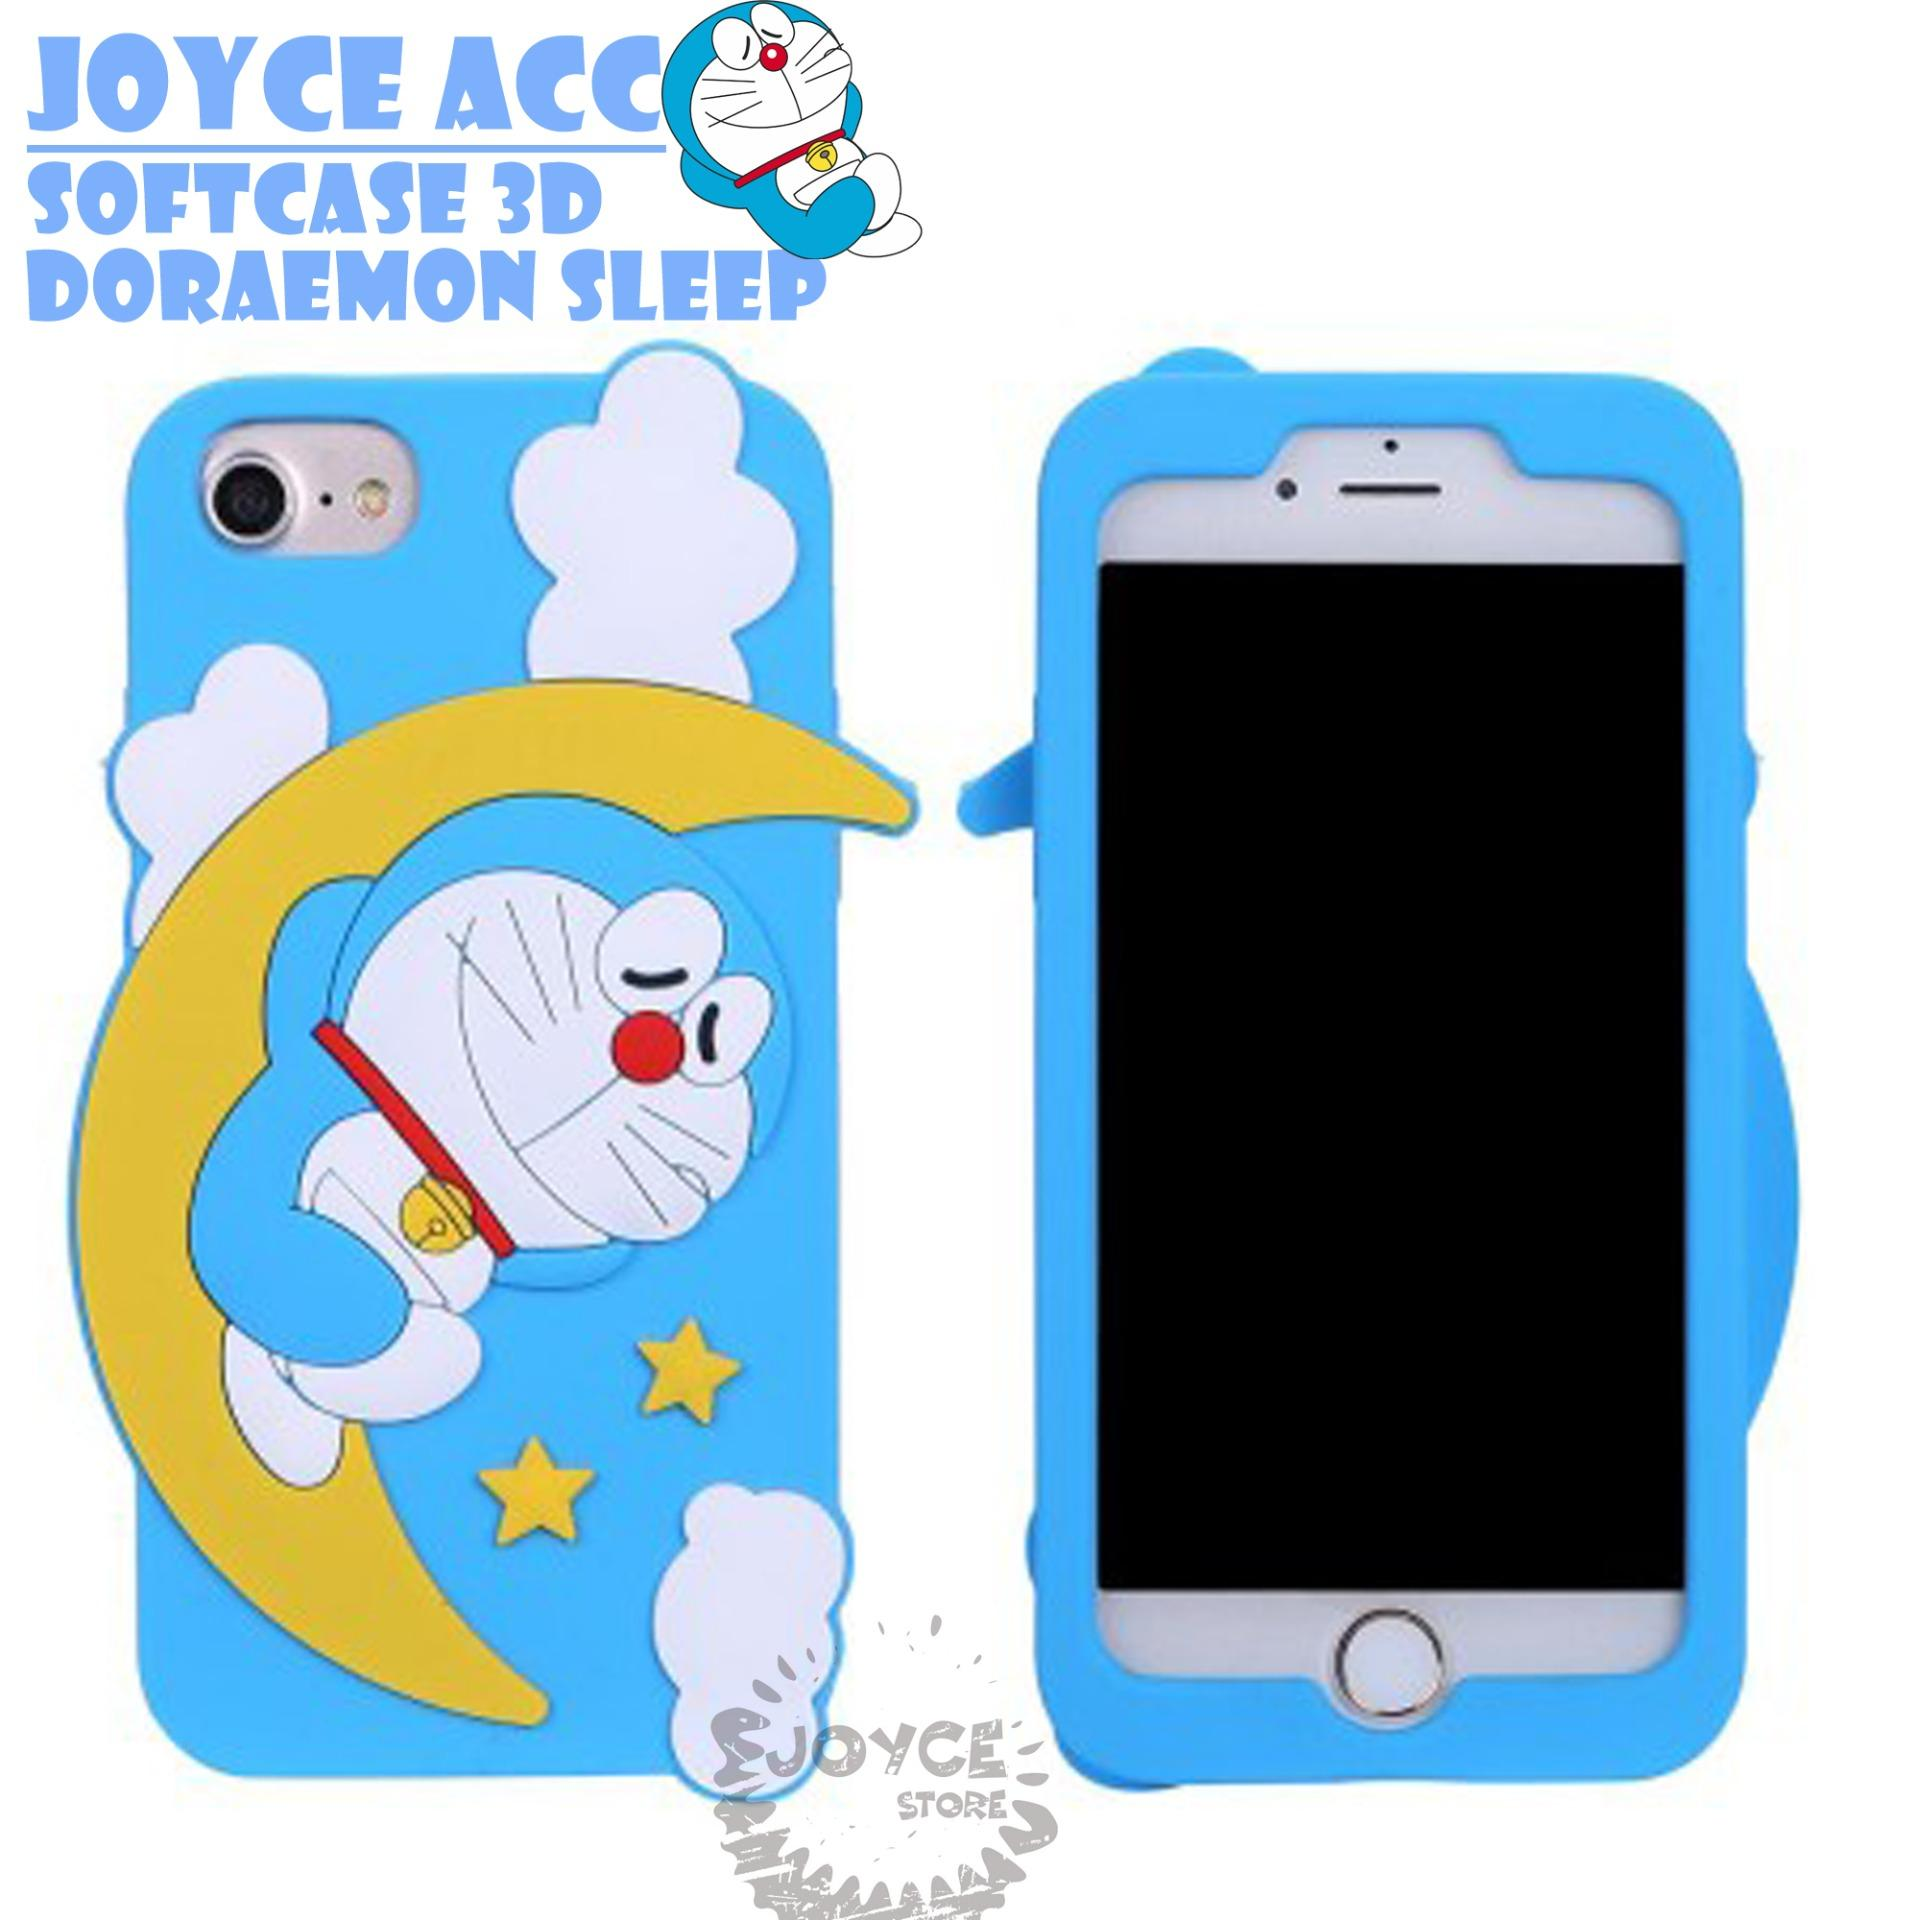 Detail Gambar Softcase 3D Cute Doraemon Sleep For Samsung J1 ACE Terbaru